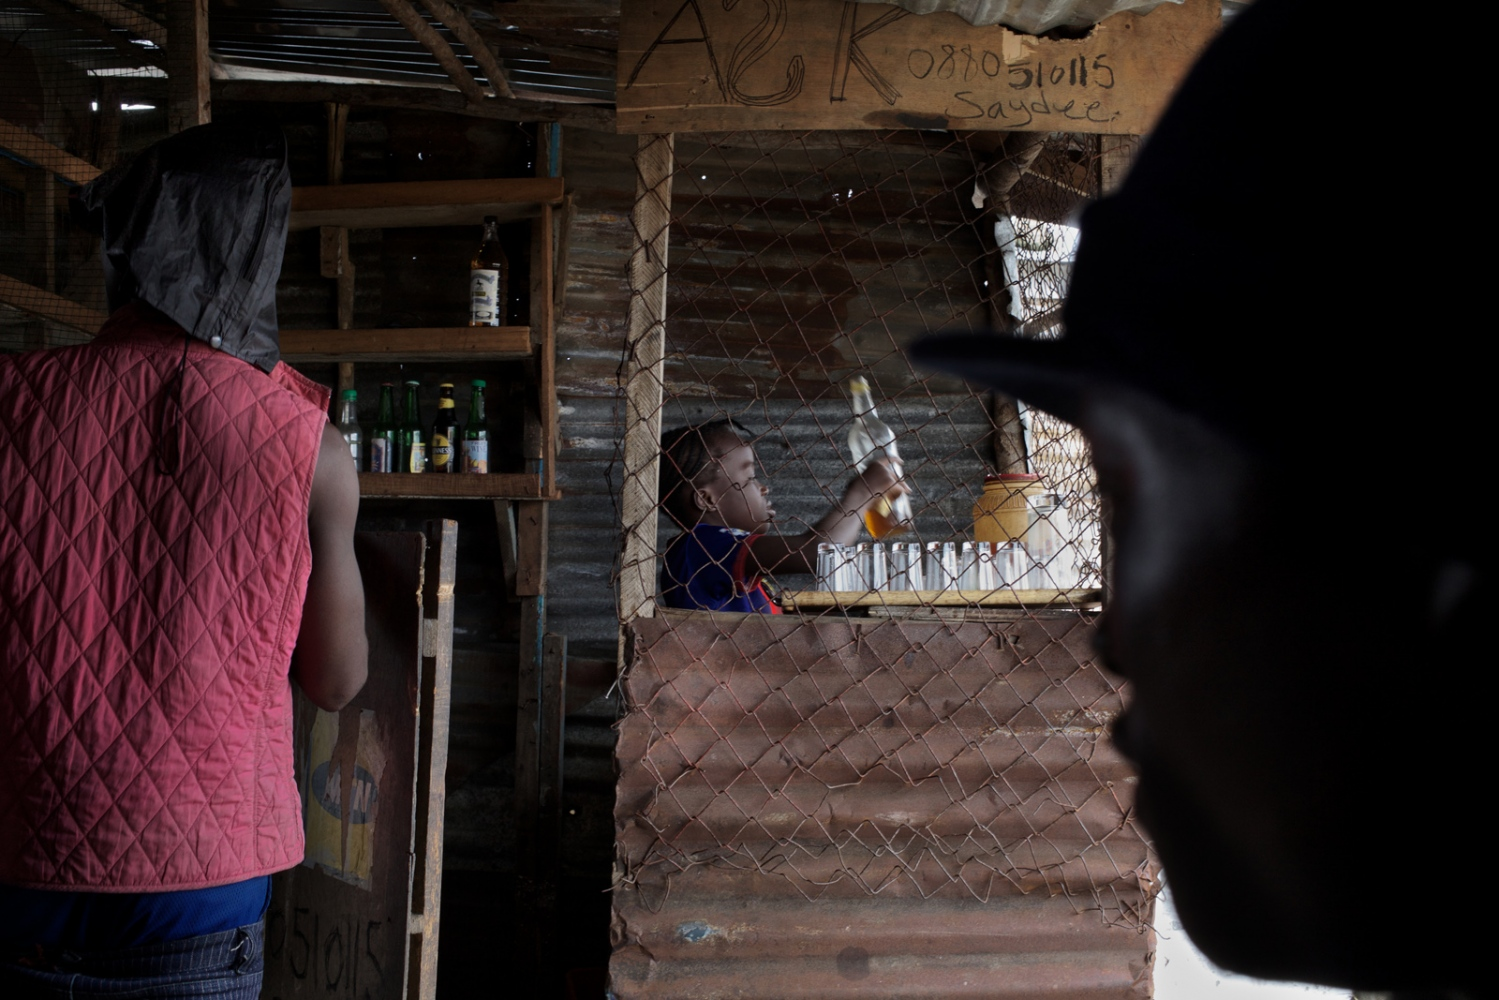 West Point, Monrovia, Liberia. August 2013. A young girl works in a bar run by her guardians.